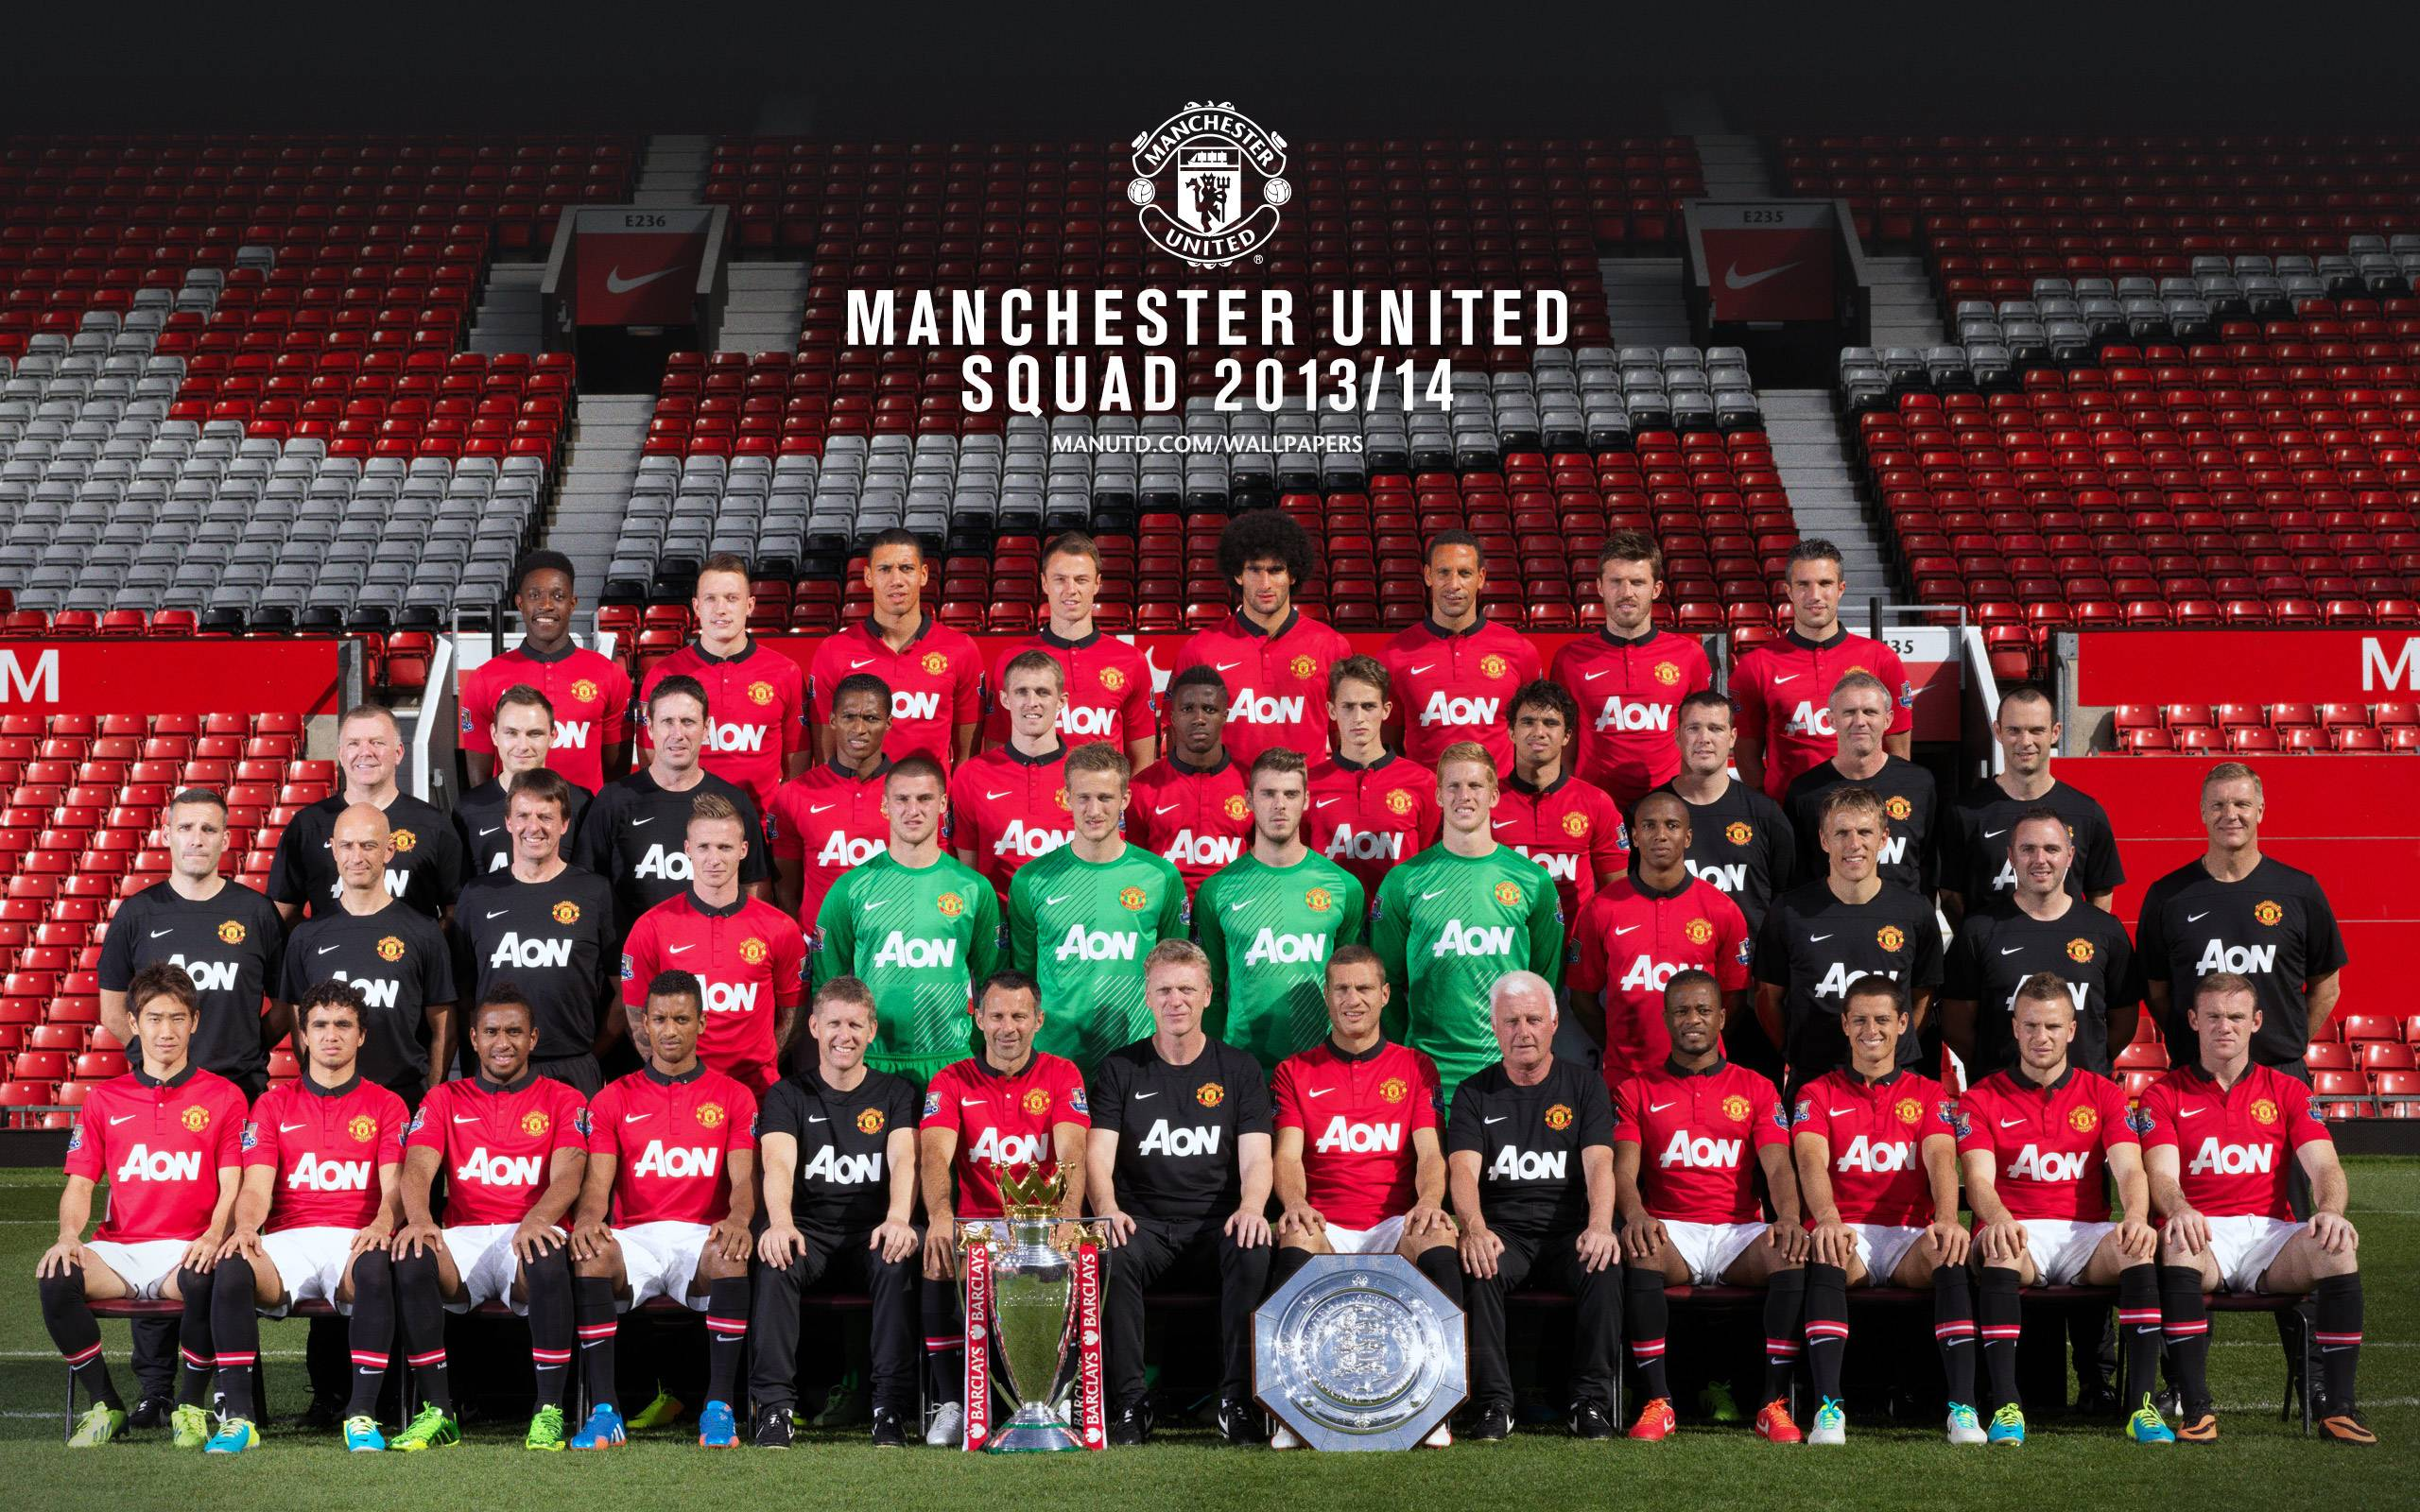 99 ] Manchester United 2018 Wallpapers On WallpaperSafari